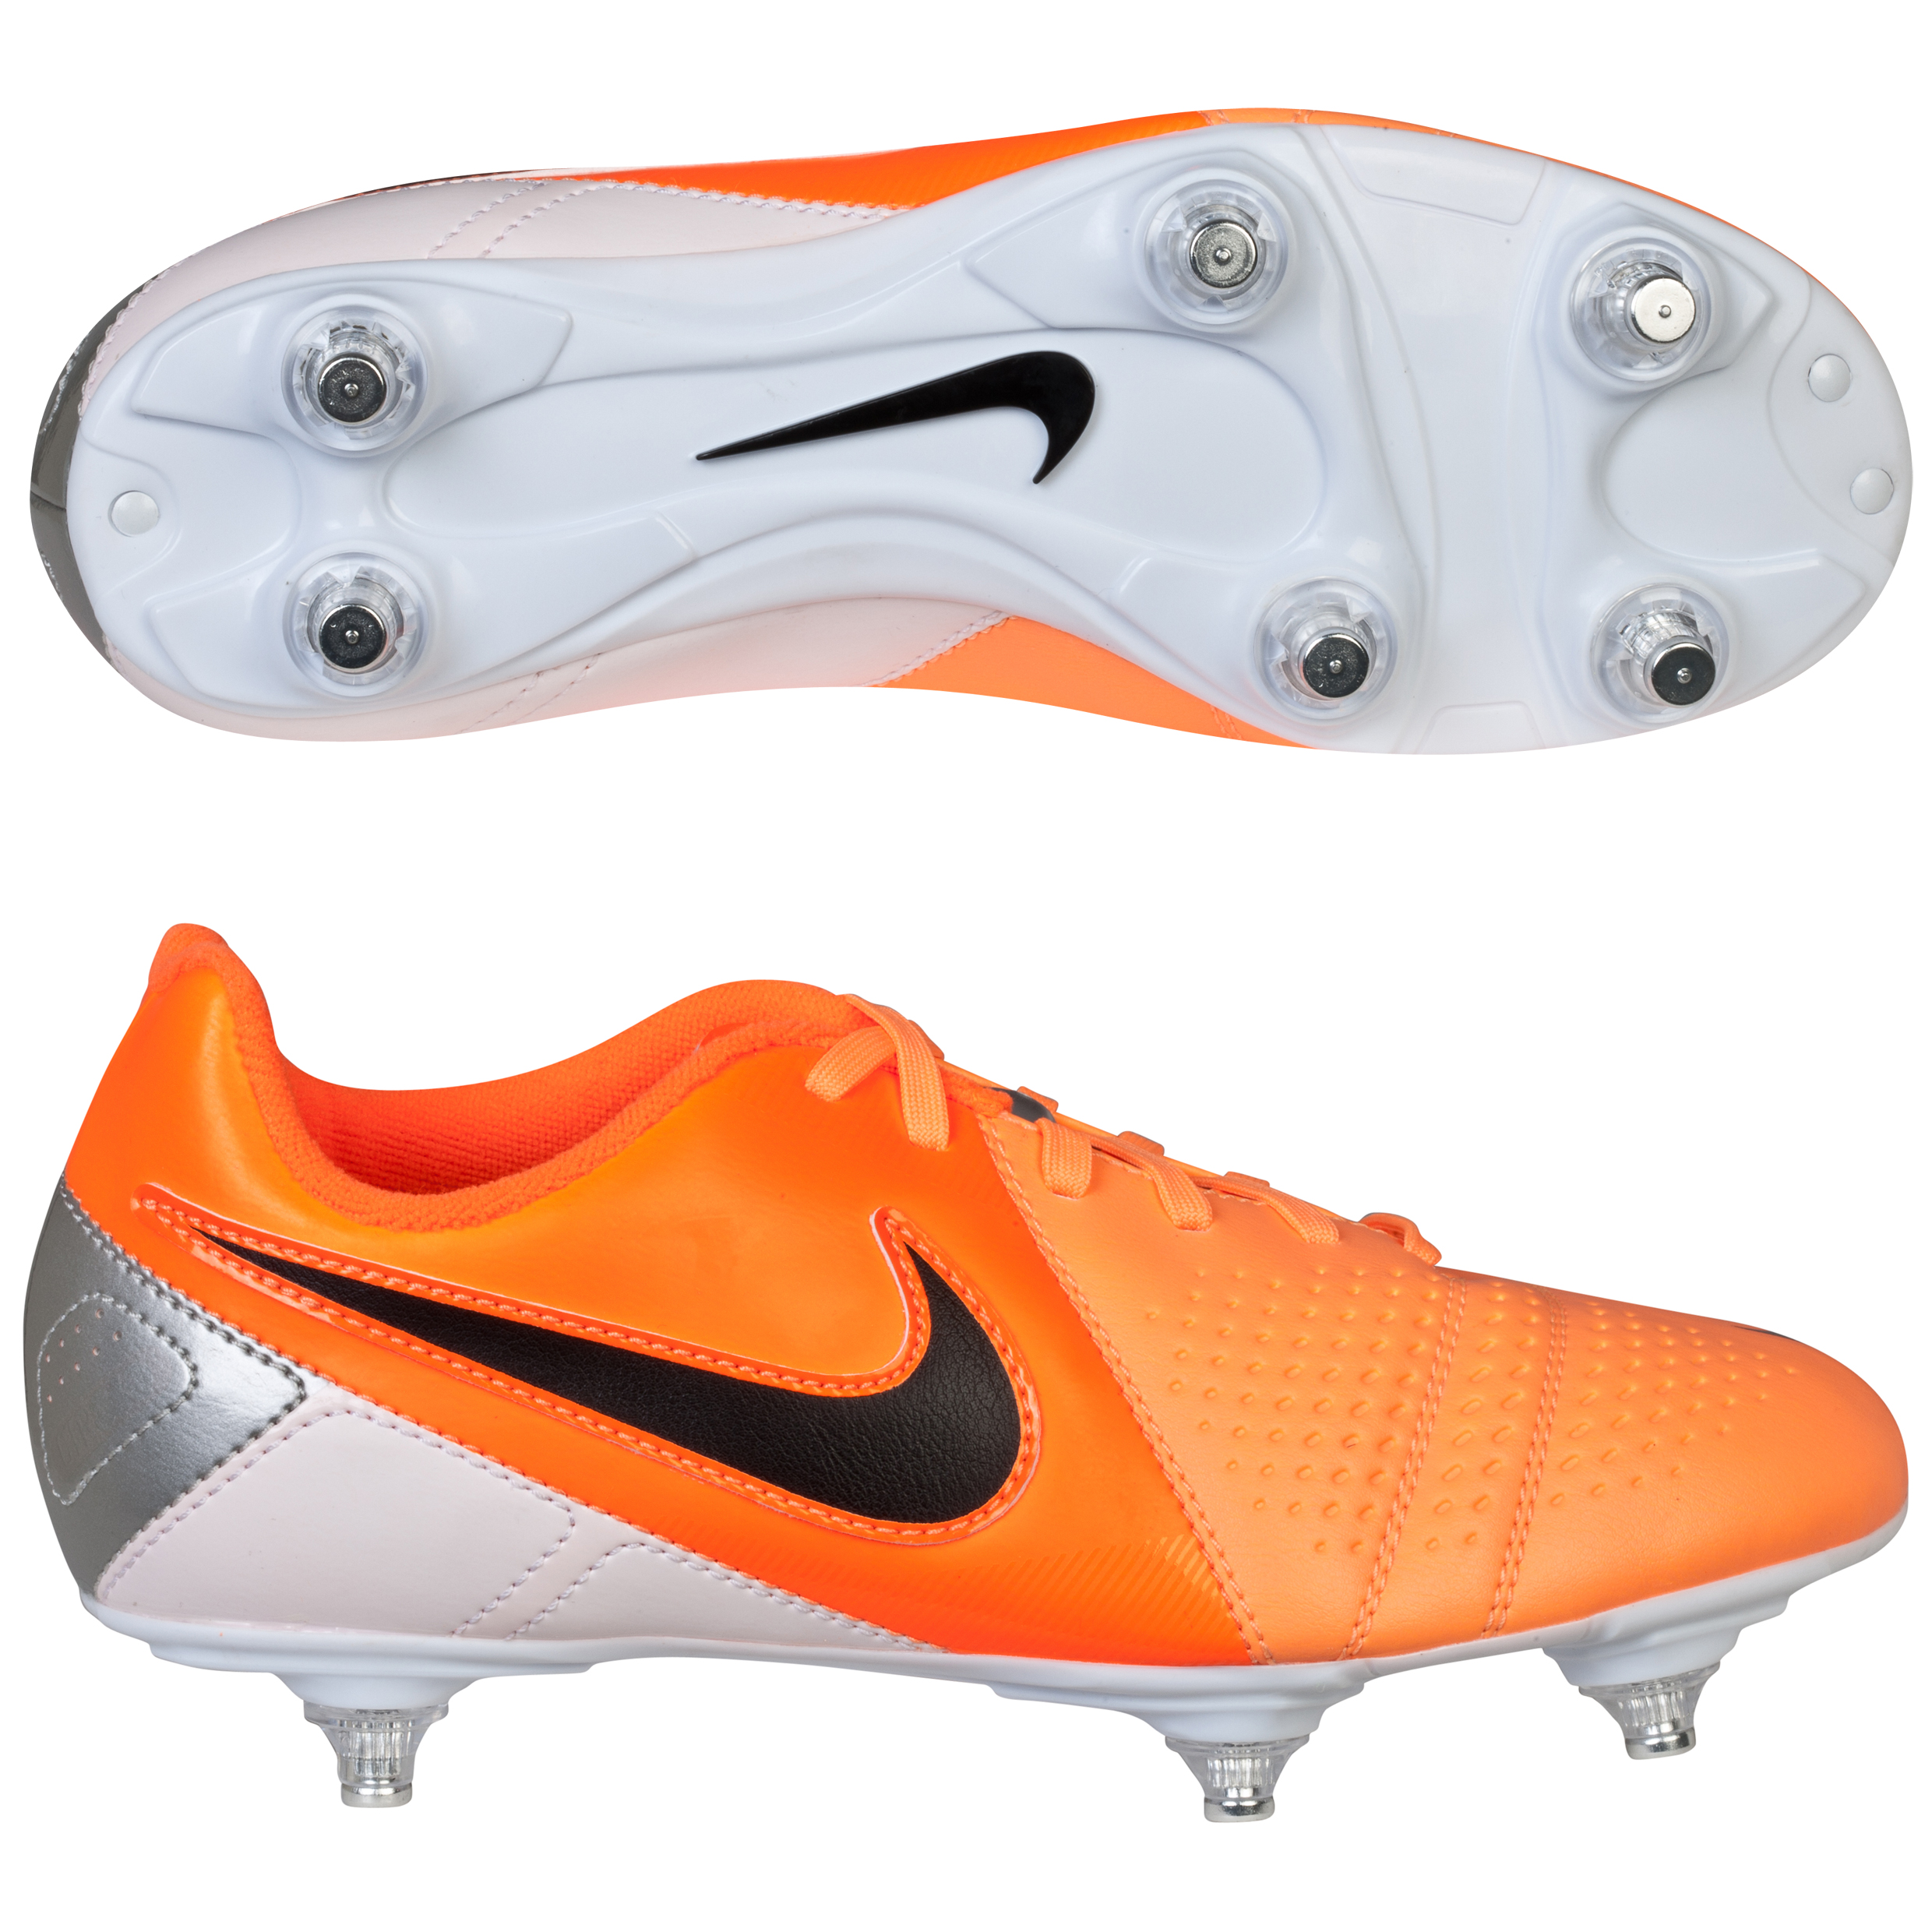 Nike CTR360 Libretto III Soft Ground Football Boots - Kids Orange